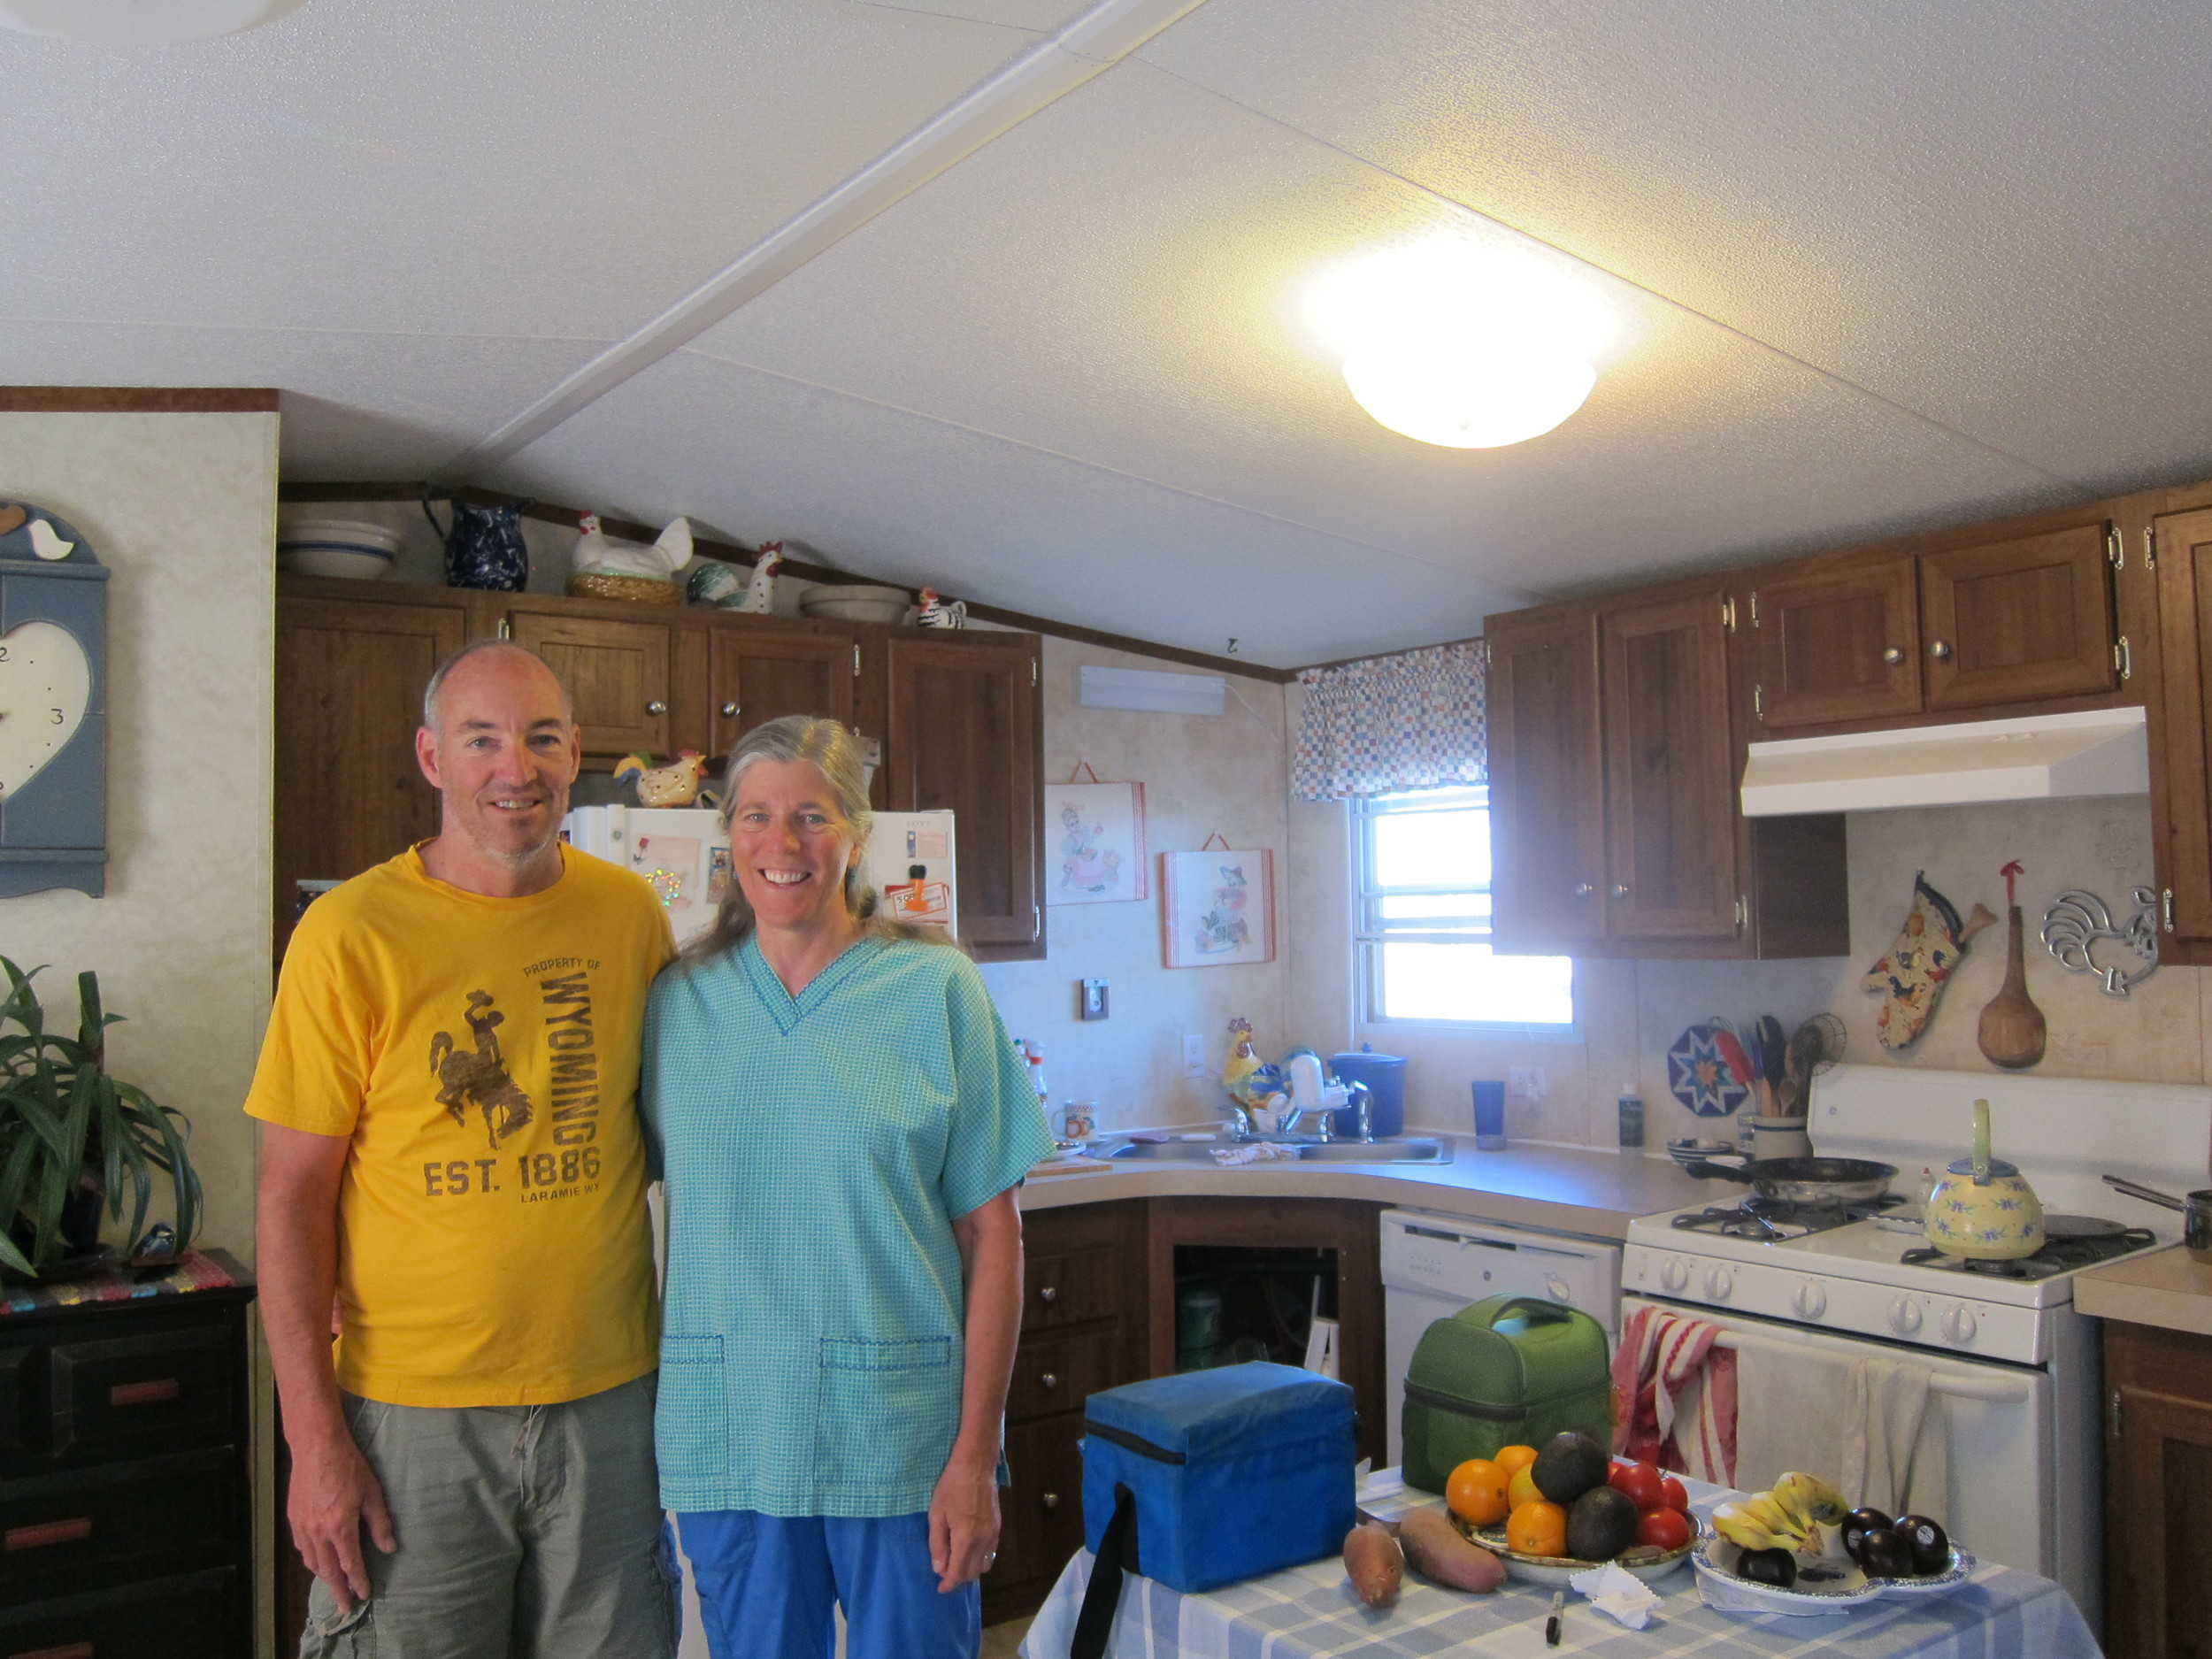 Kevin and Lucy, my wonderful hosts in Rawlins WY! Just look at all those fruits and veggies!